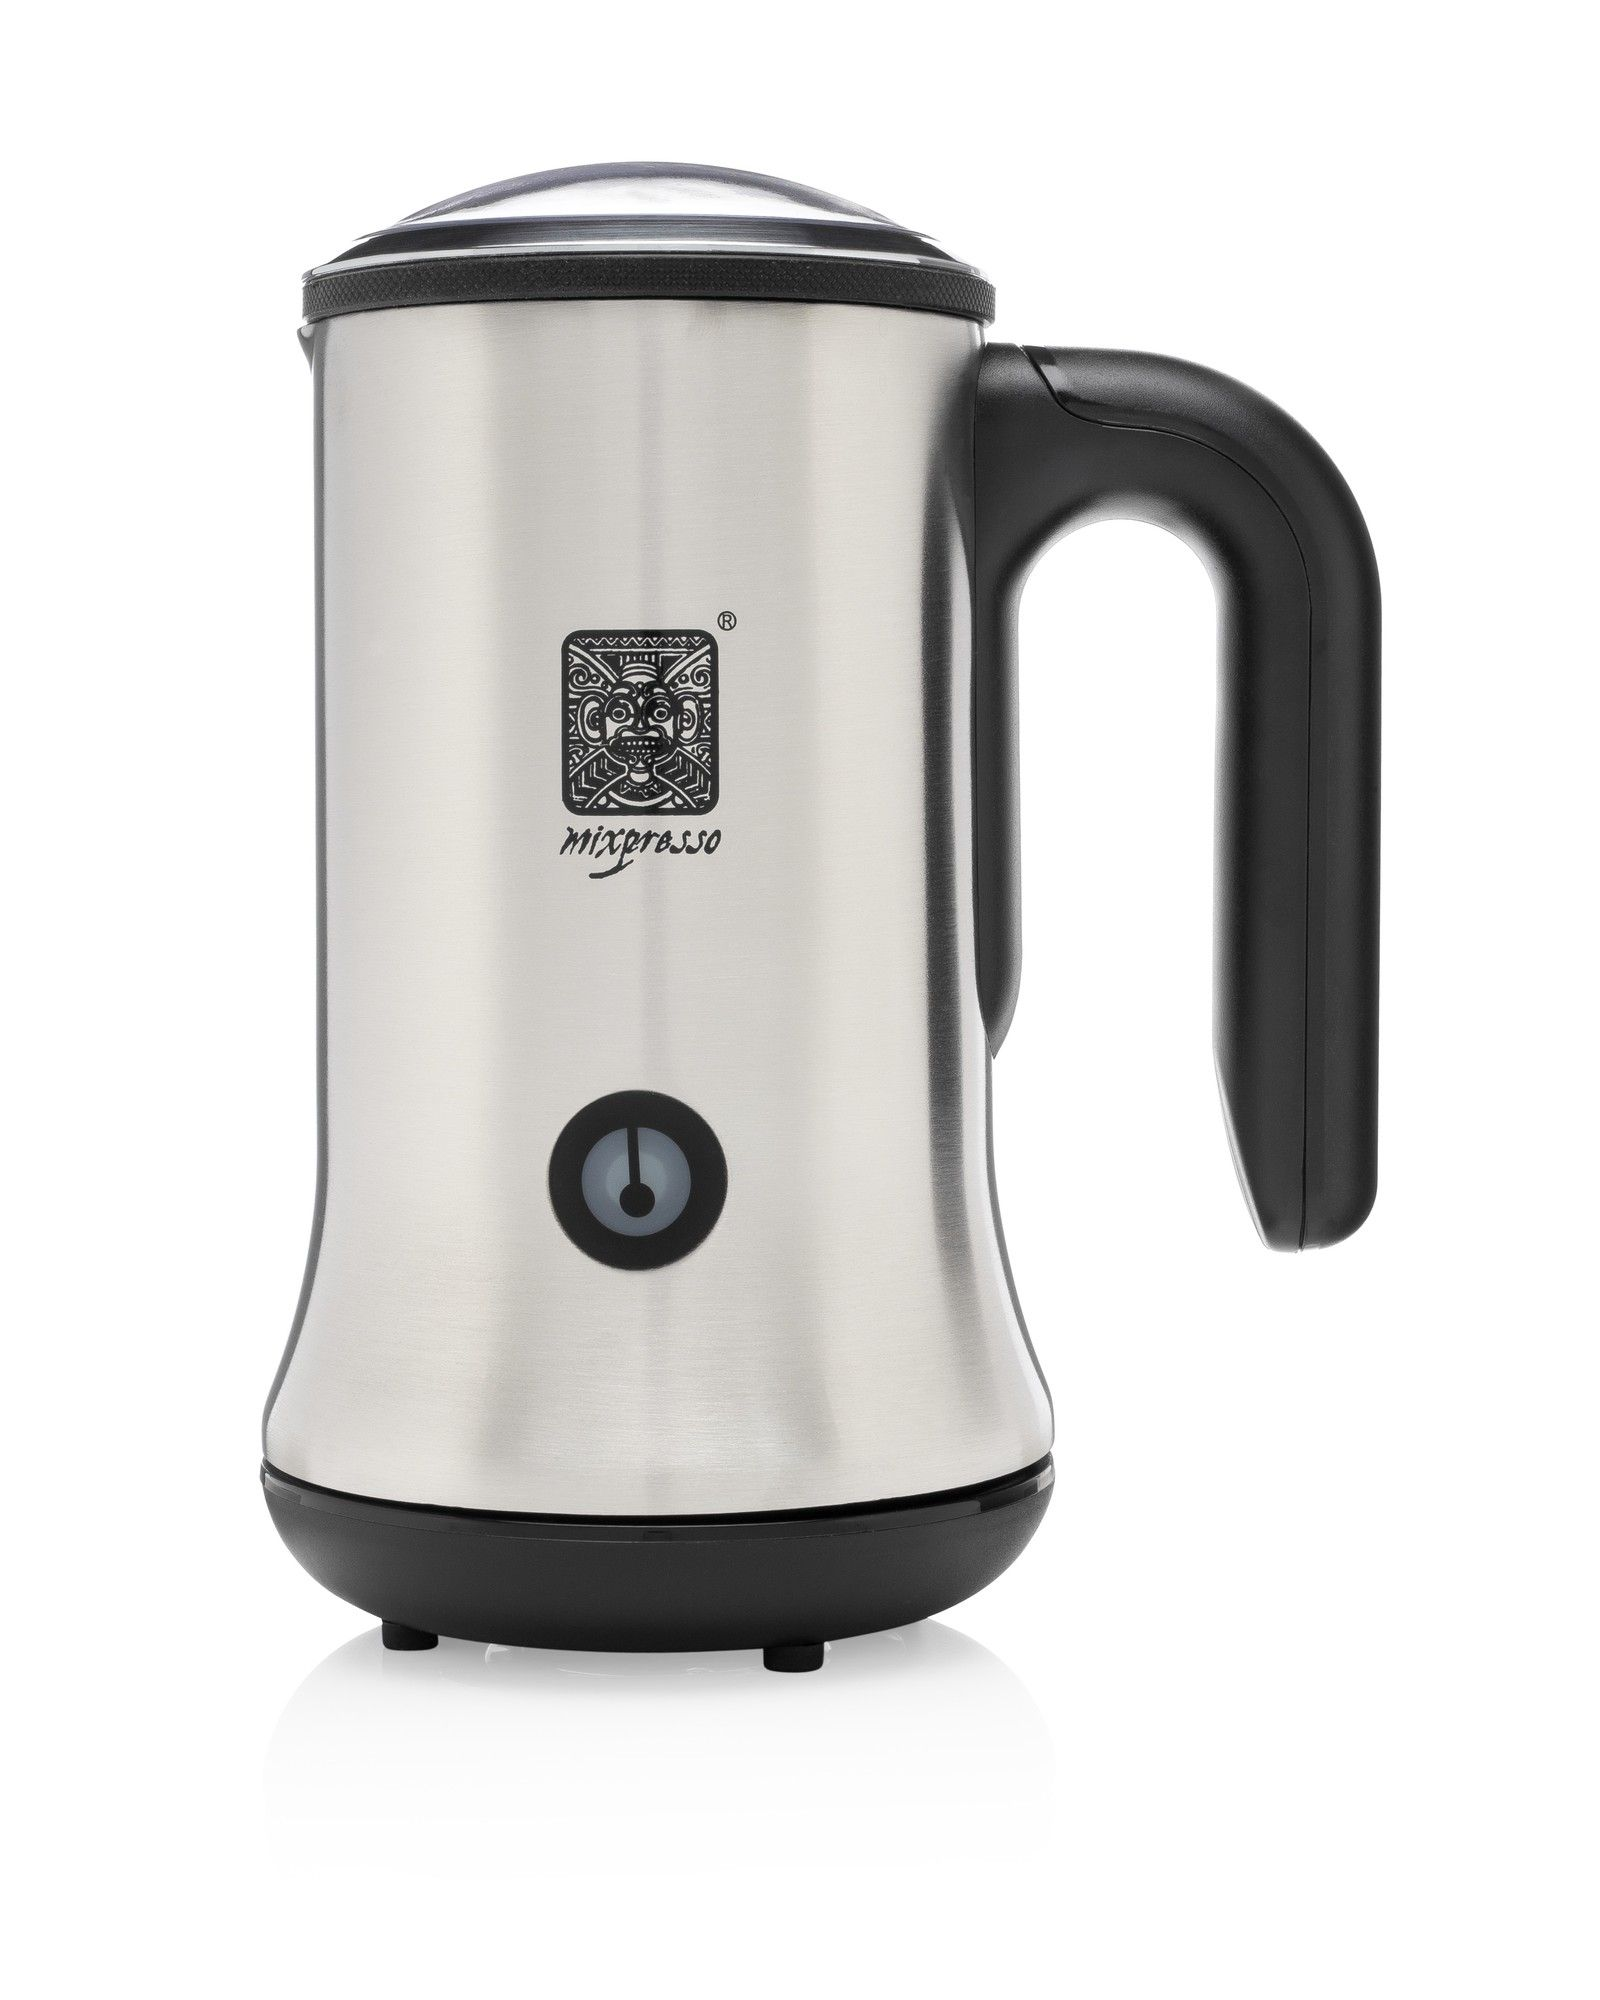 Milan Automatic Milk Frother Milk frother, Frother